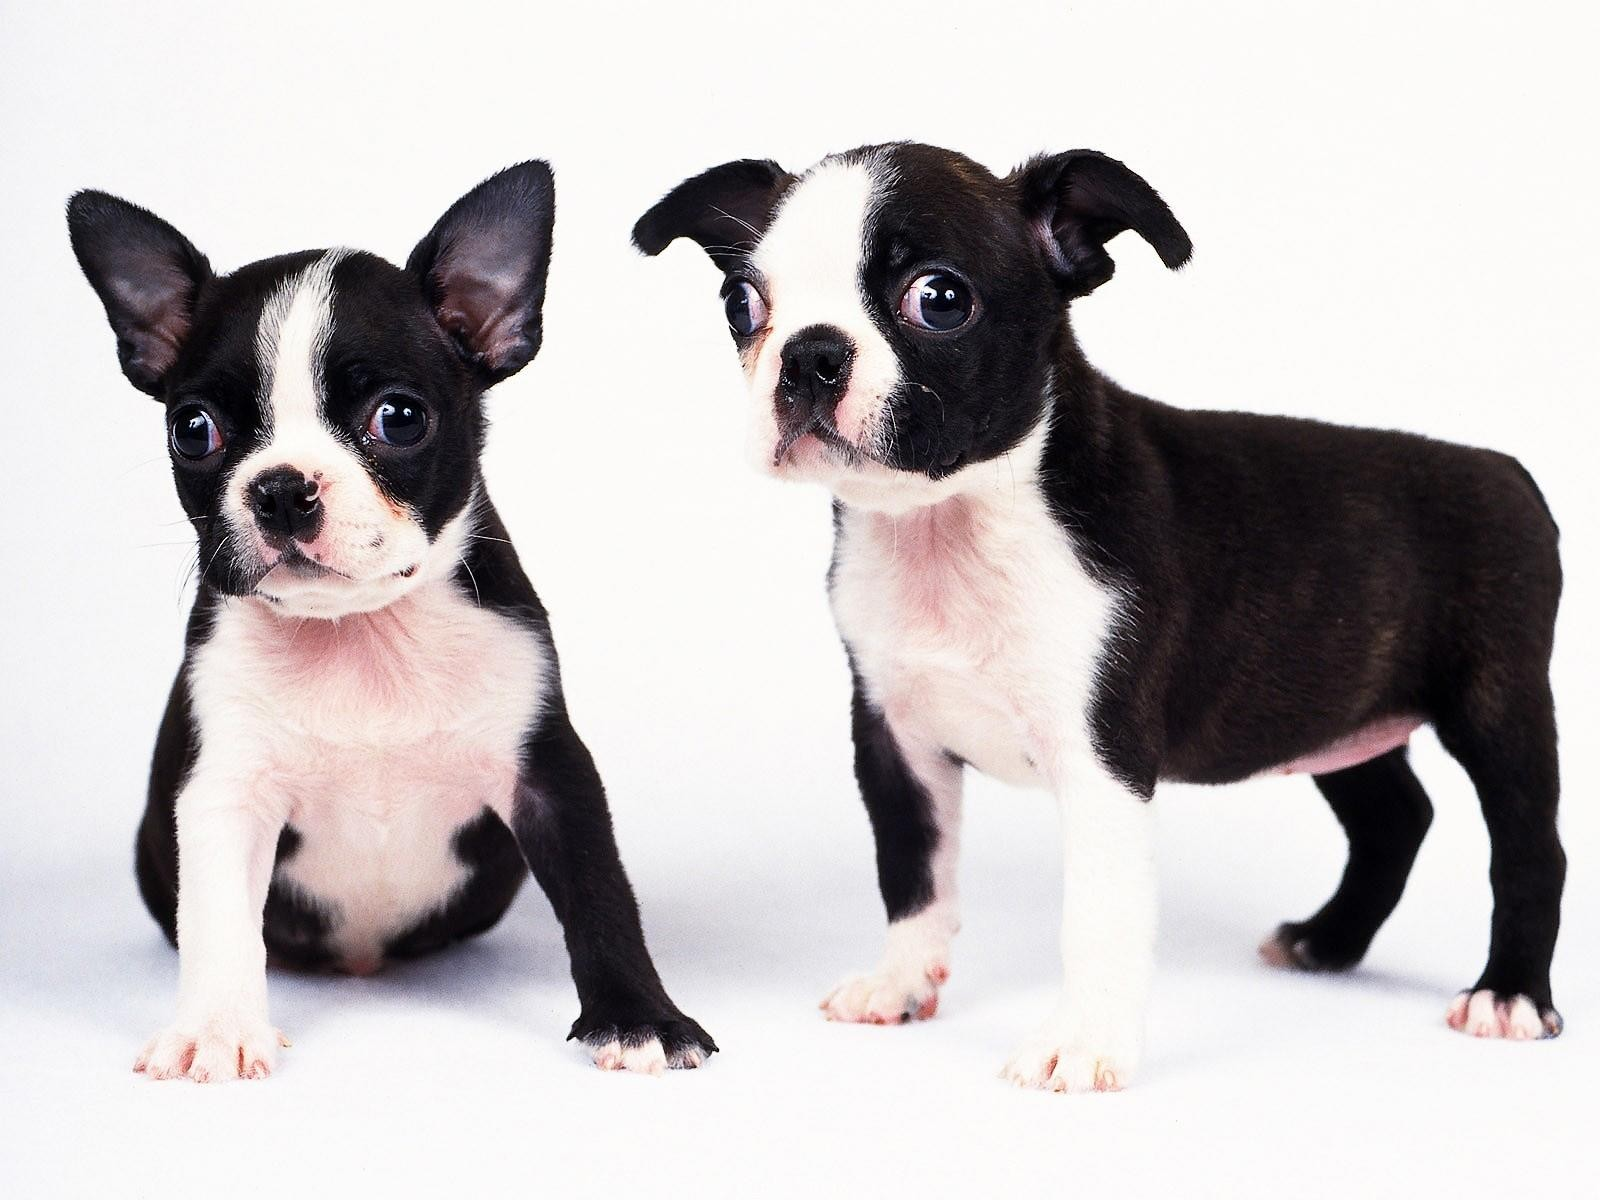 Black and white dogs puppies wallpaper background wallpaper with